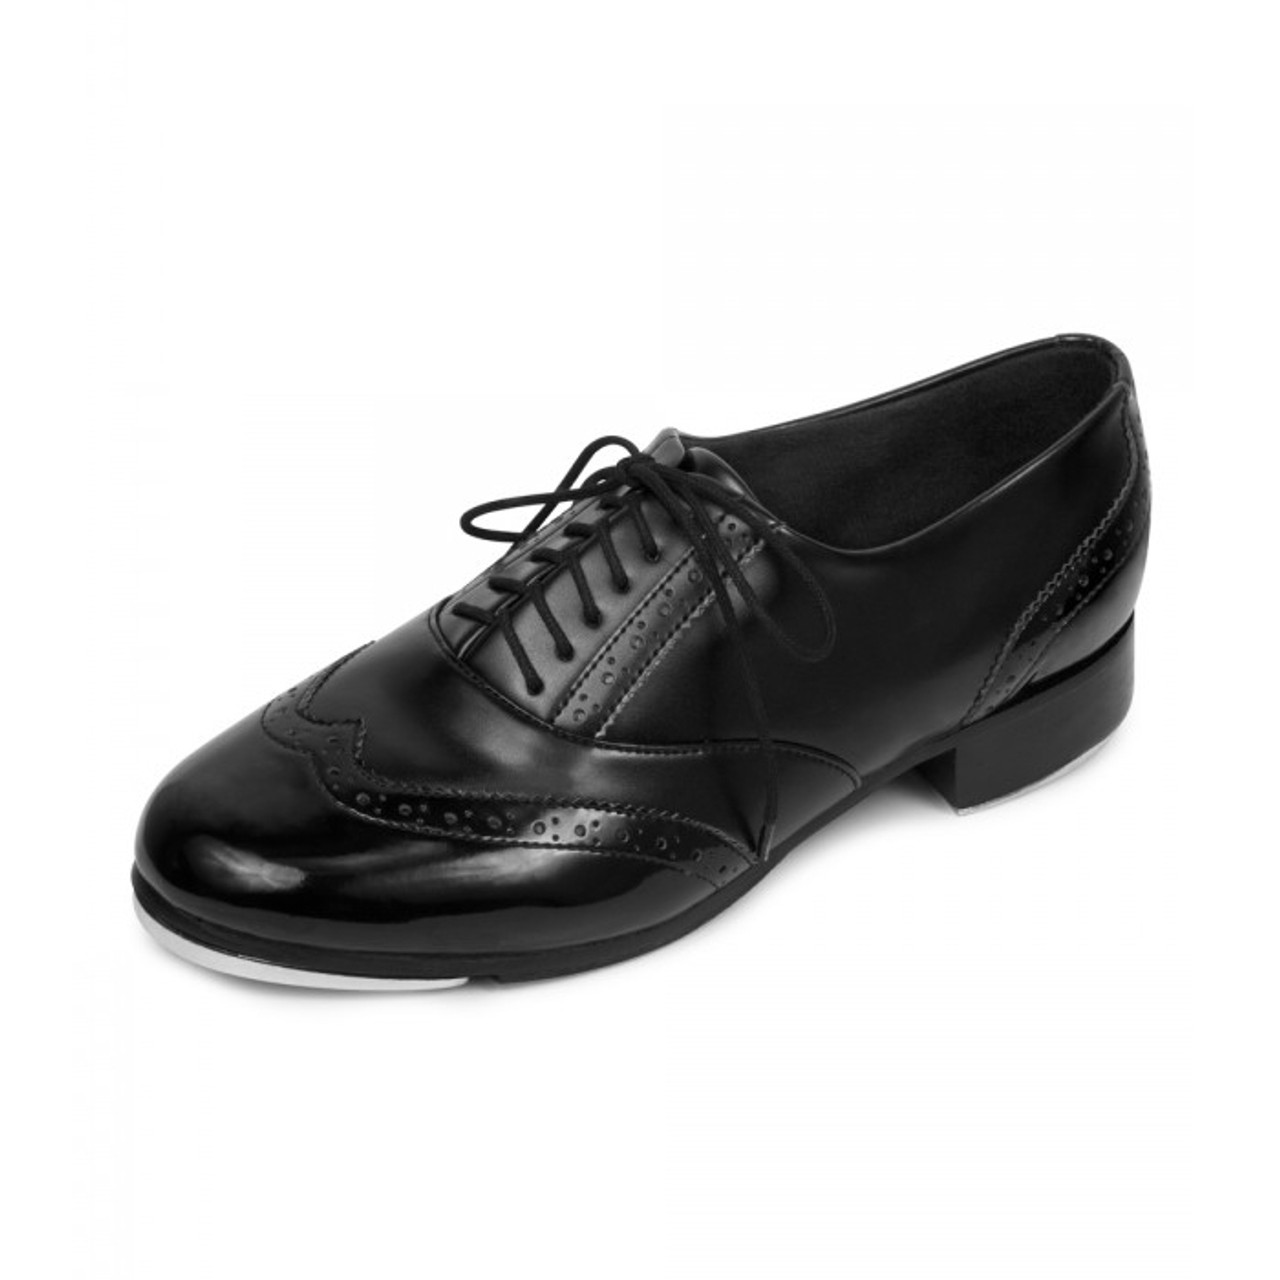 414b15f421e4 Bloch Charleston PU Tap Shoe - 4 dance